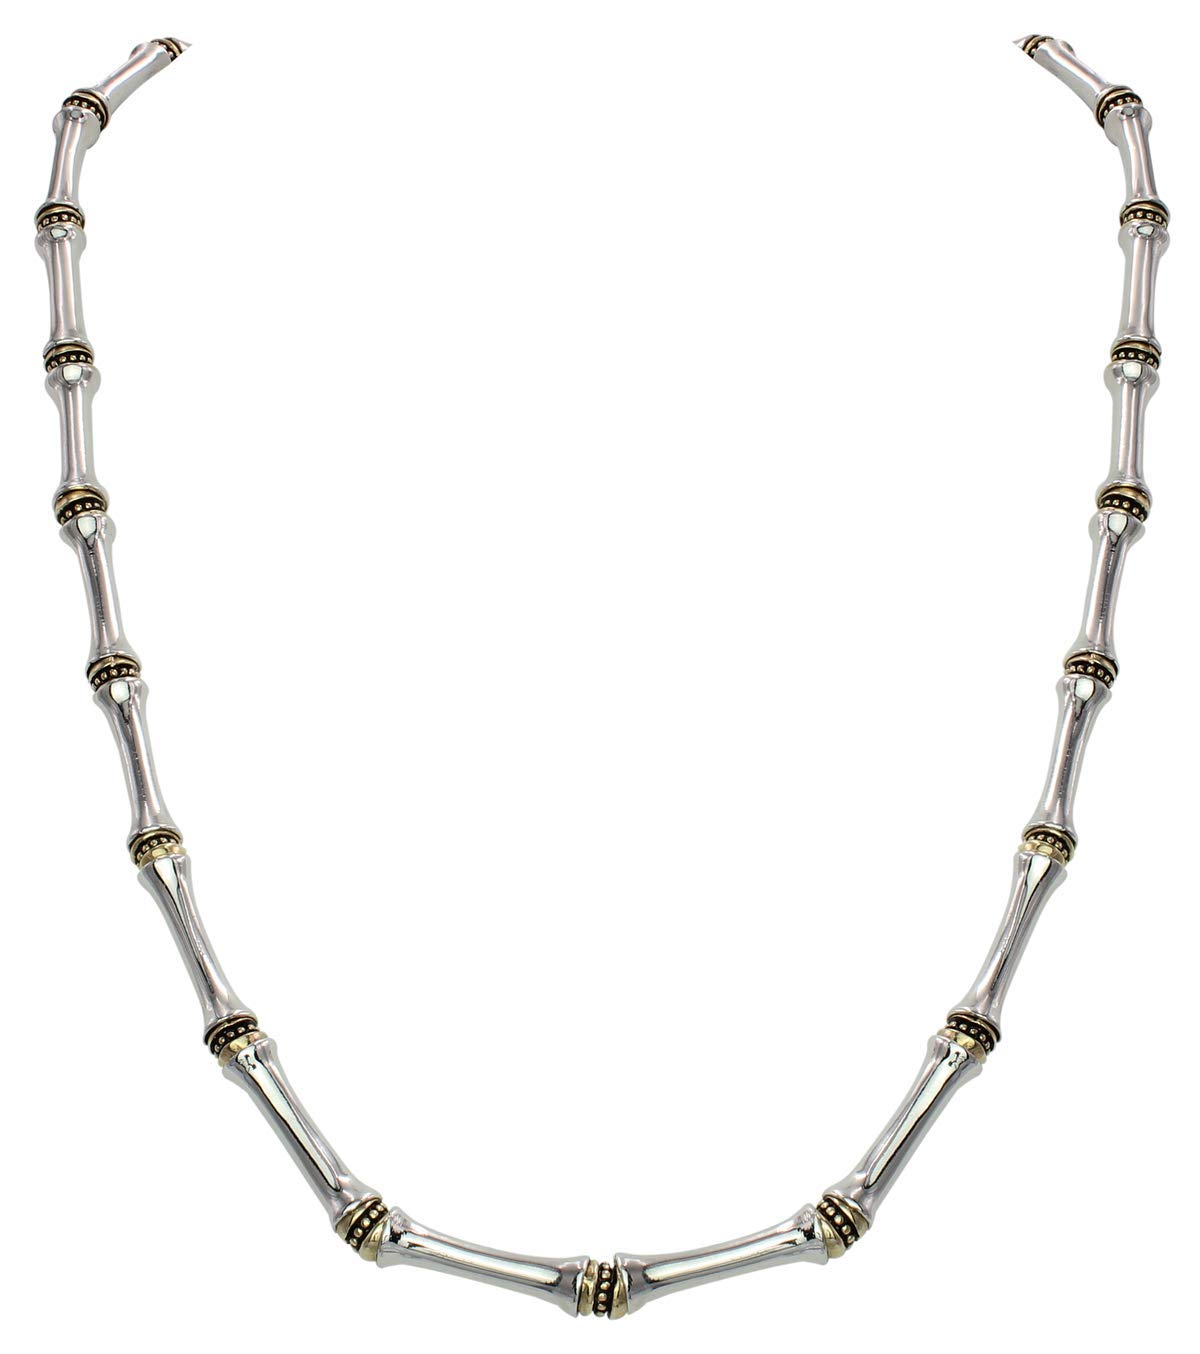 John Medeiros Canias Collection Single Row Gold and Silver Necklace with Extender 16''-18'' Made in America